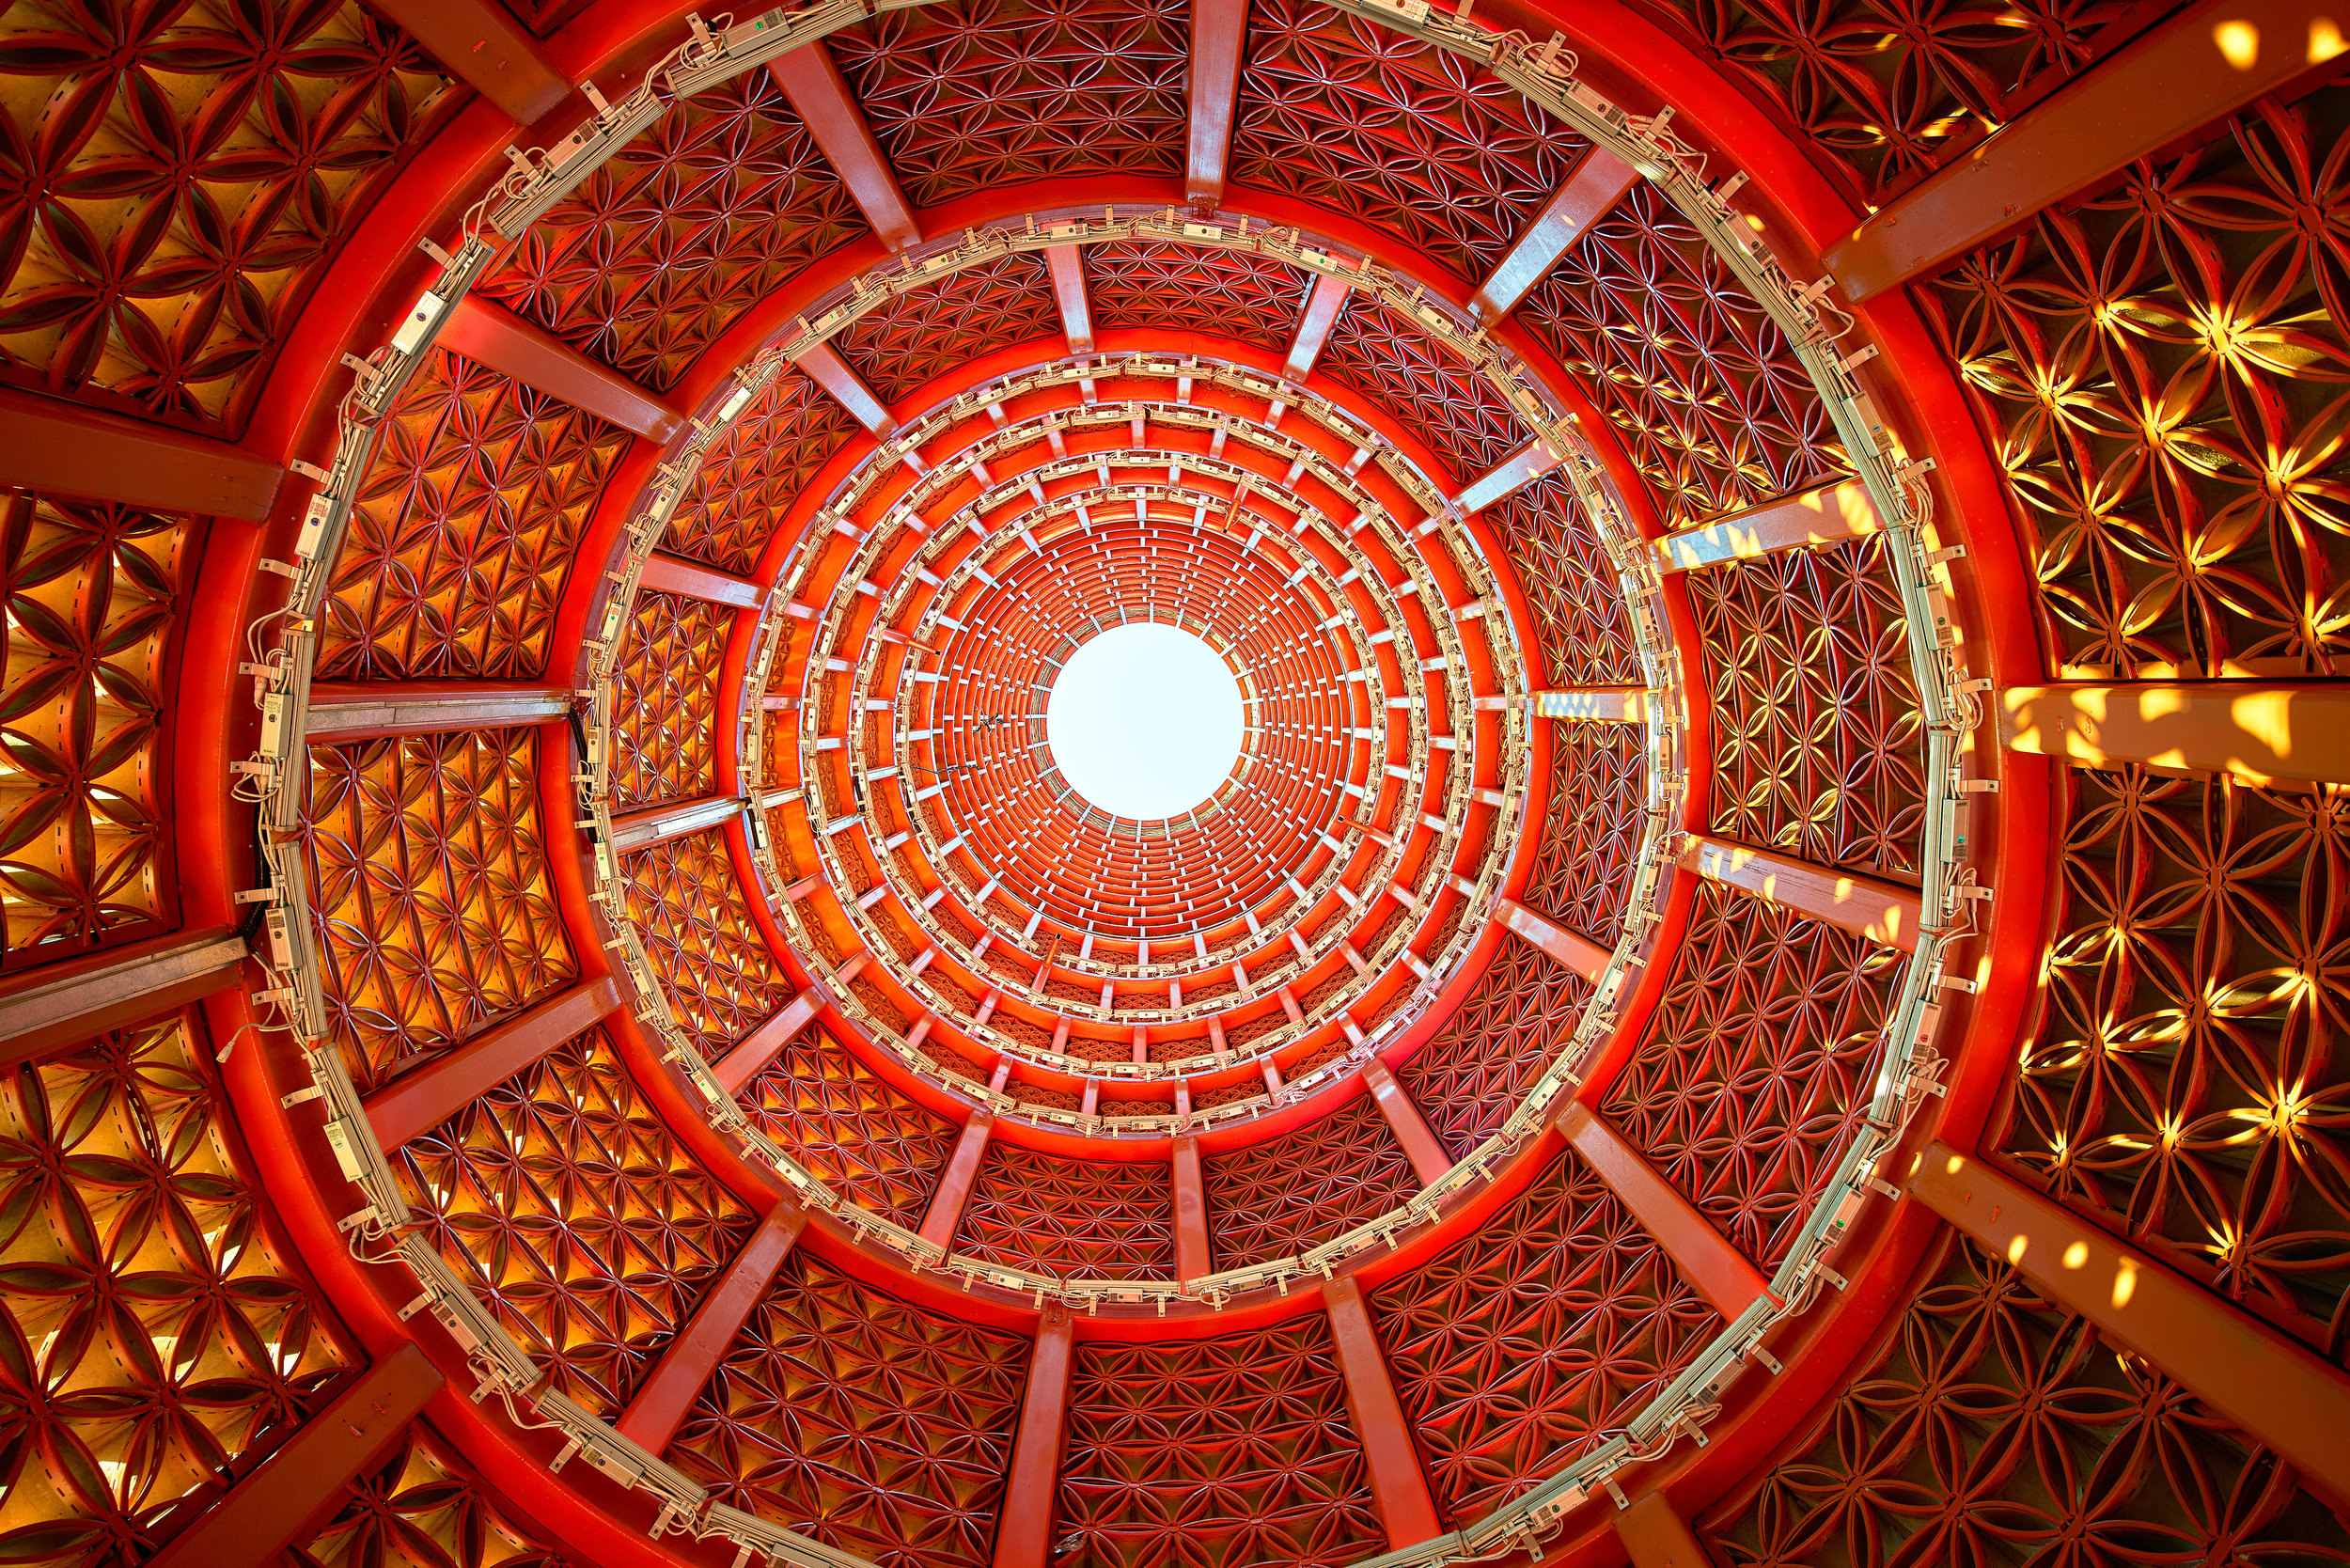 interior detail of the Obleisk at Uptown, Jinjiang.